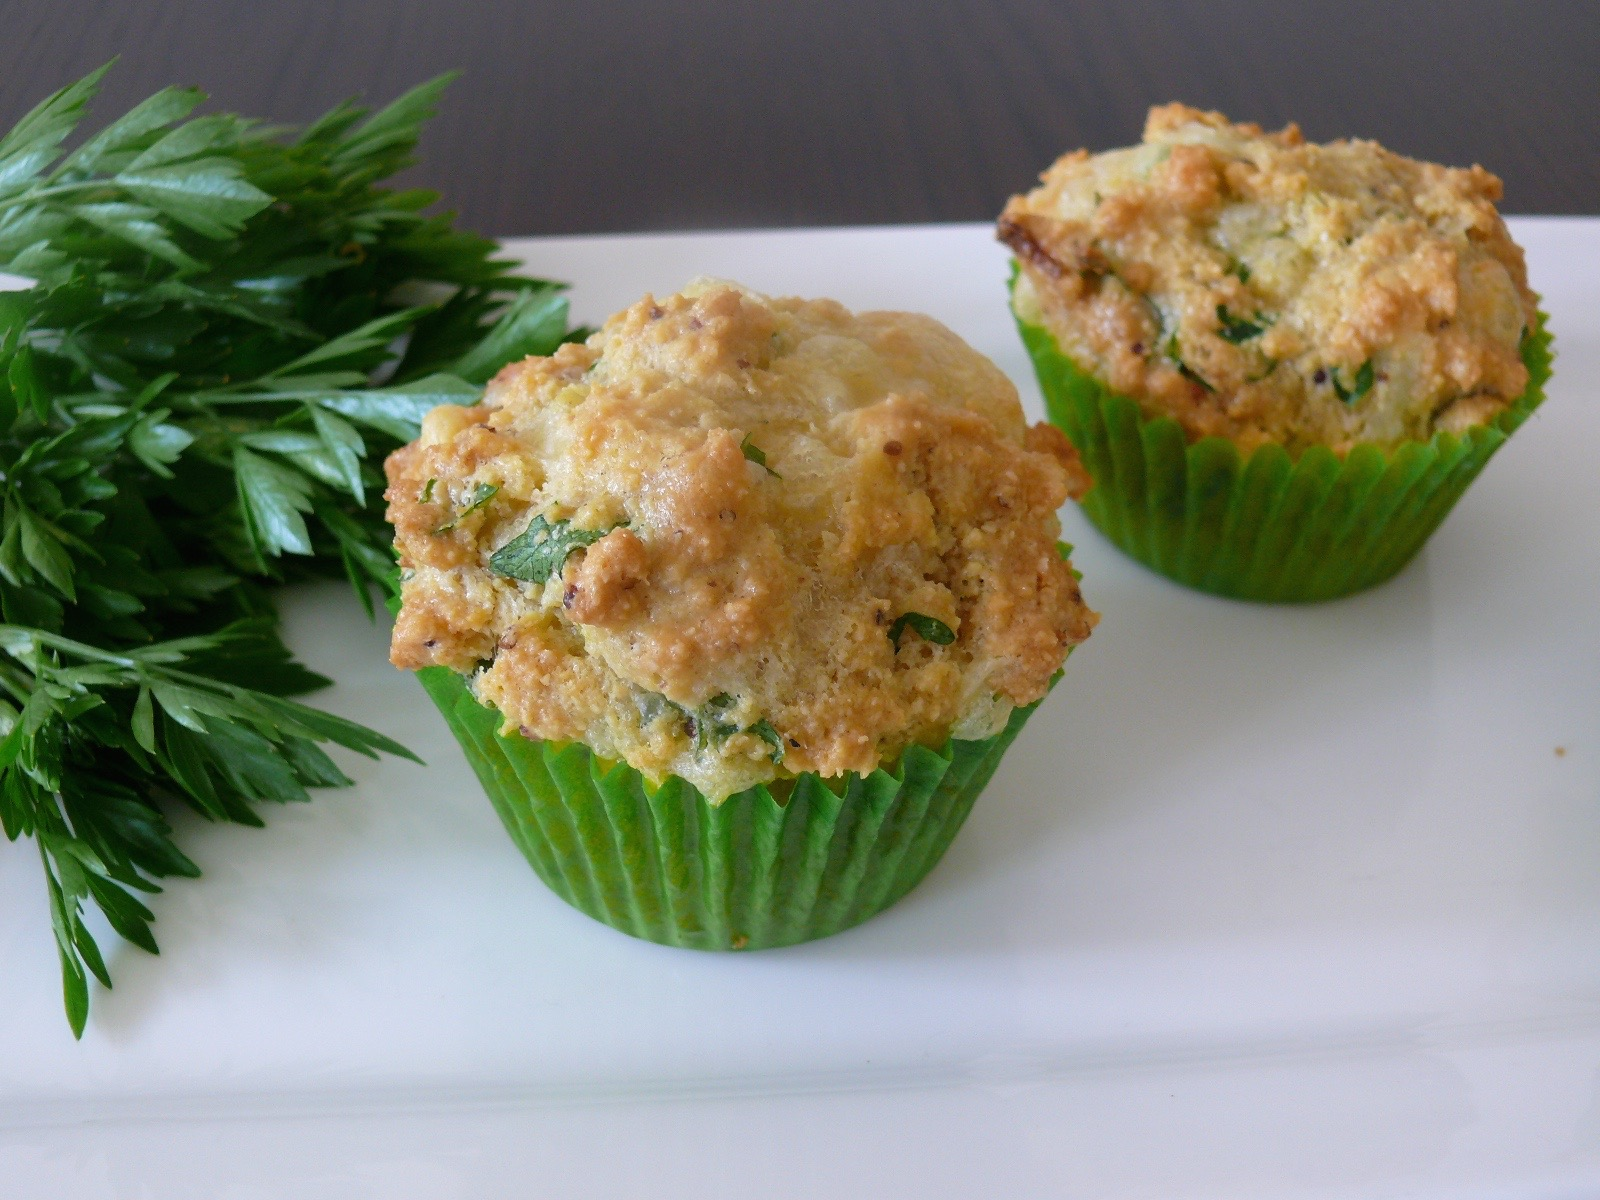 Savoury cheese muffins primally inspired grain free paleo with one muffin malvernweather Images